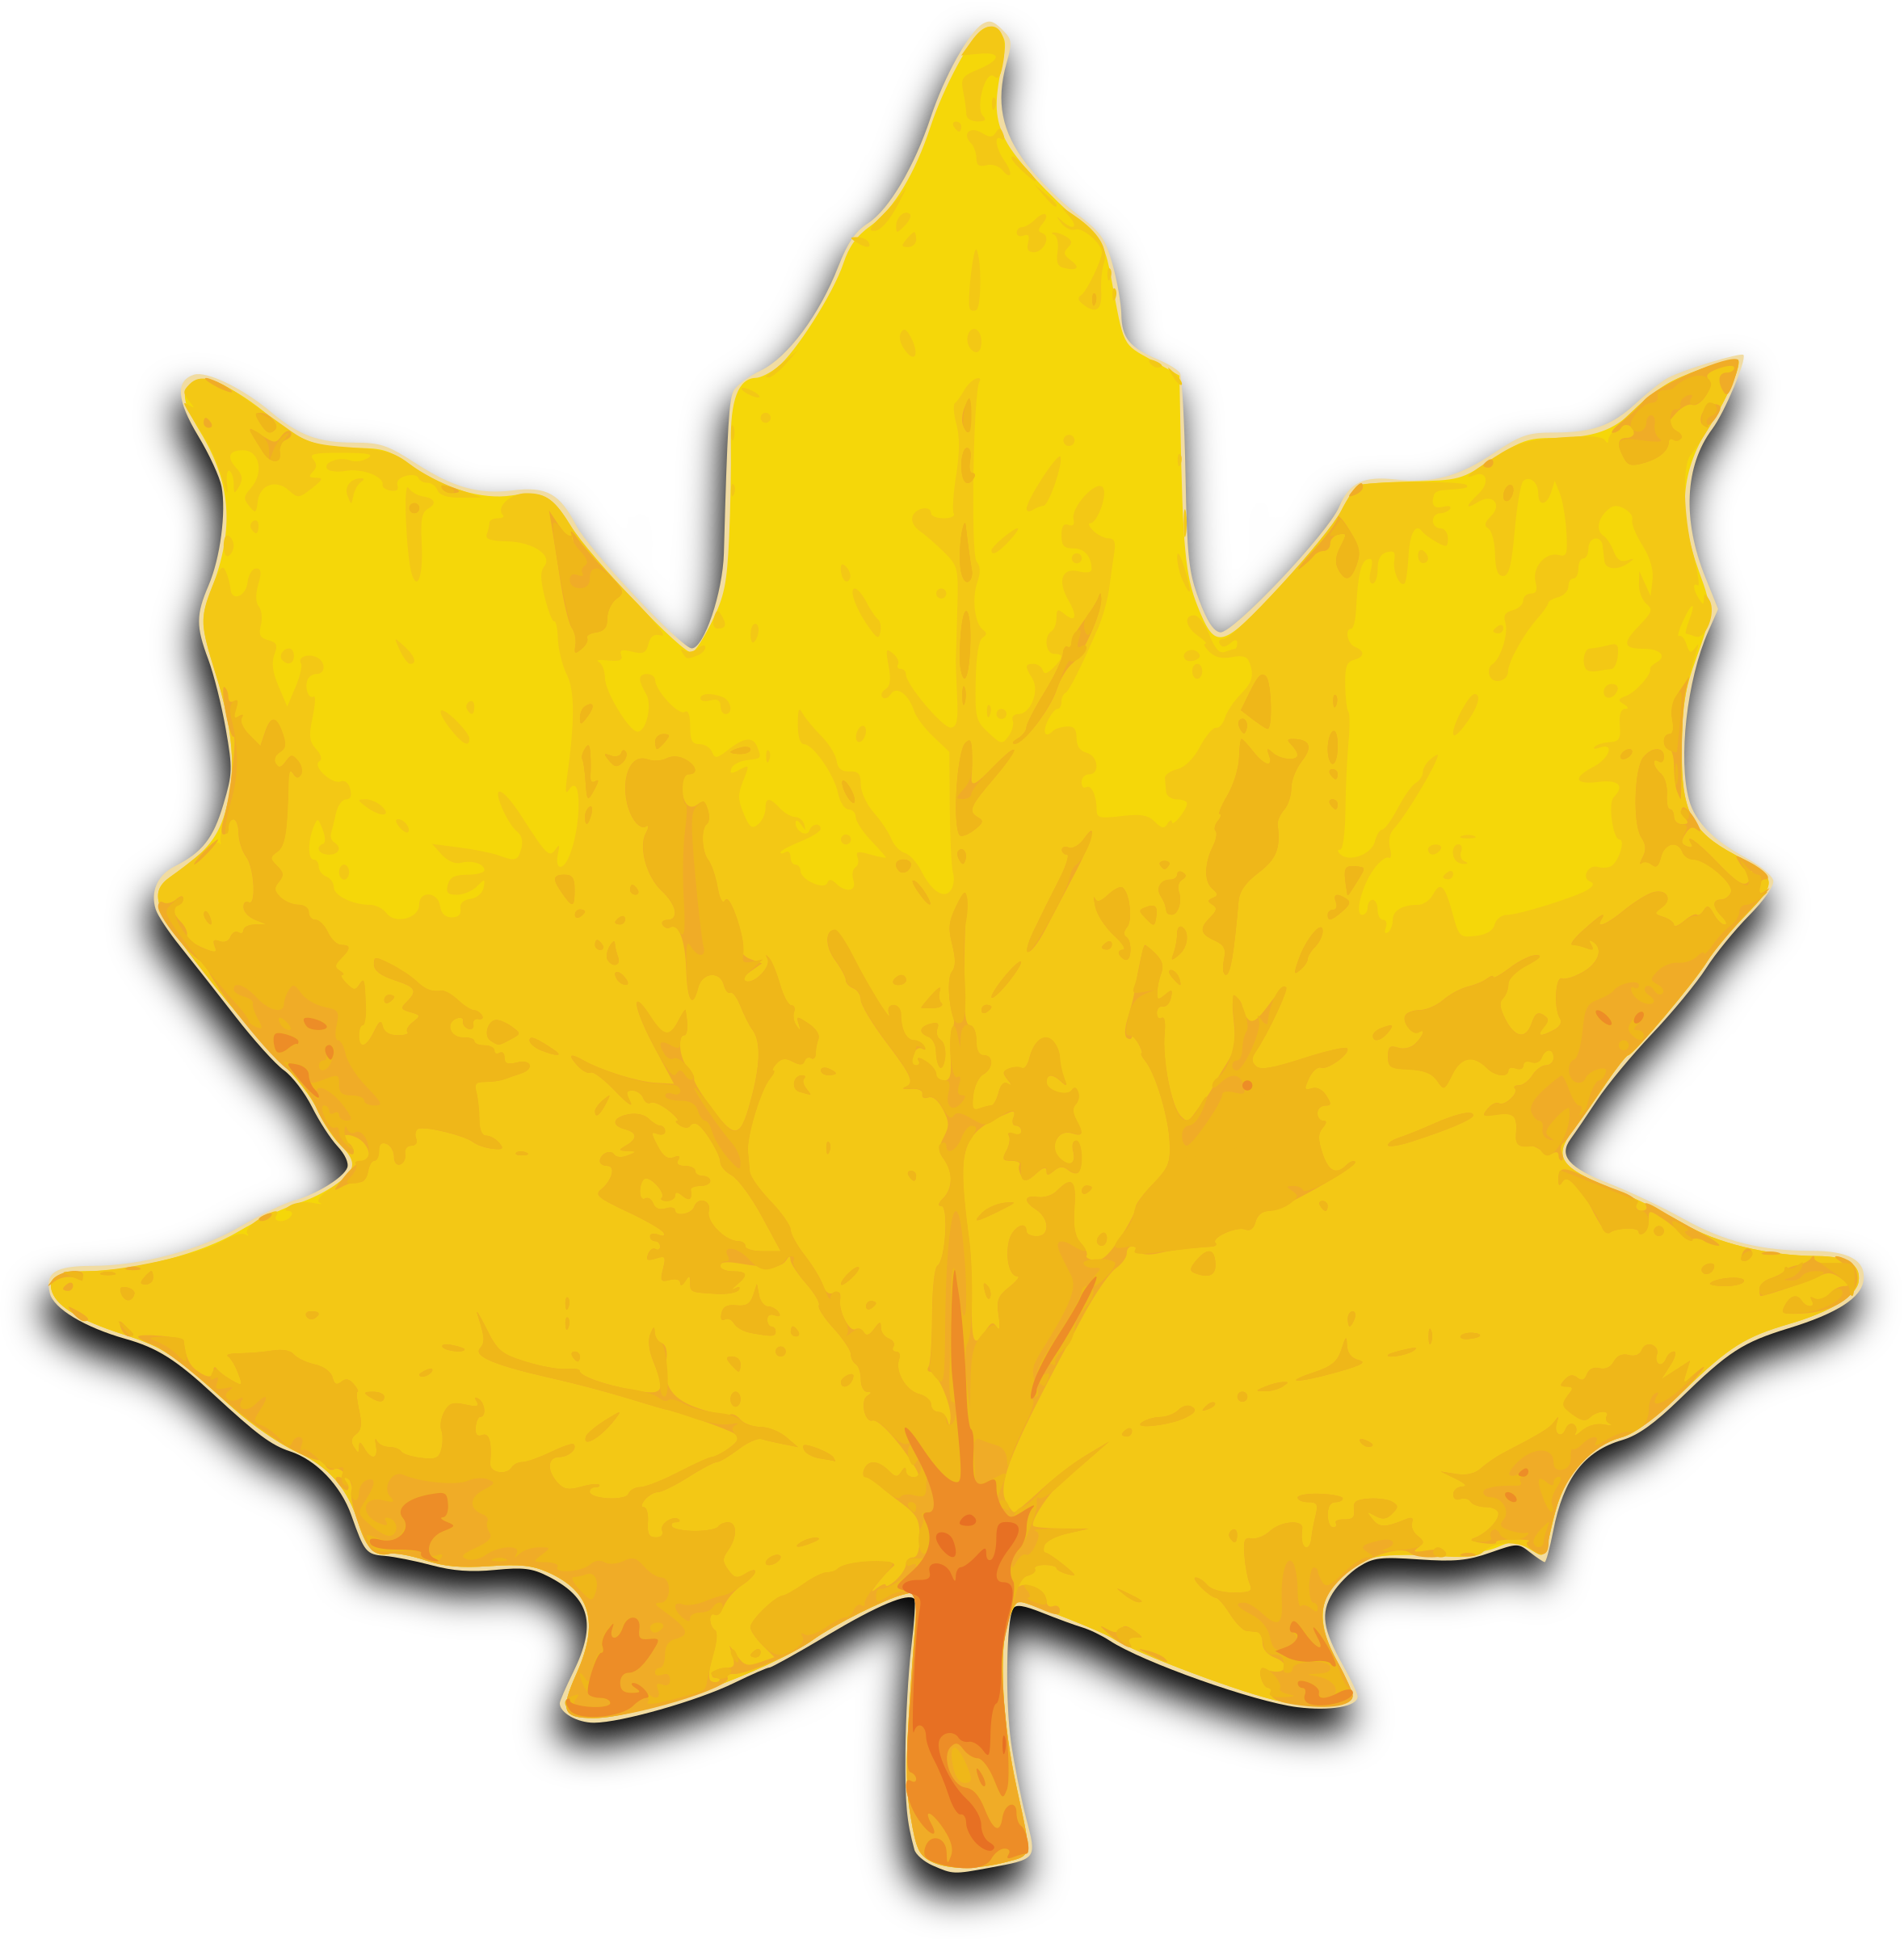 https://openclipart.org/image/2400px/svg_to_png/80635/M-Leaf-02.png